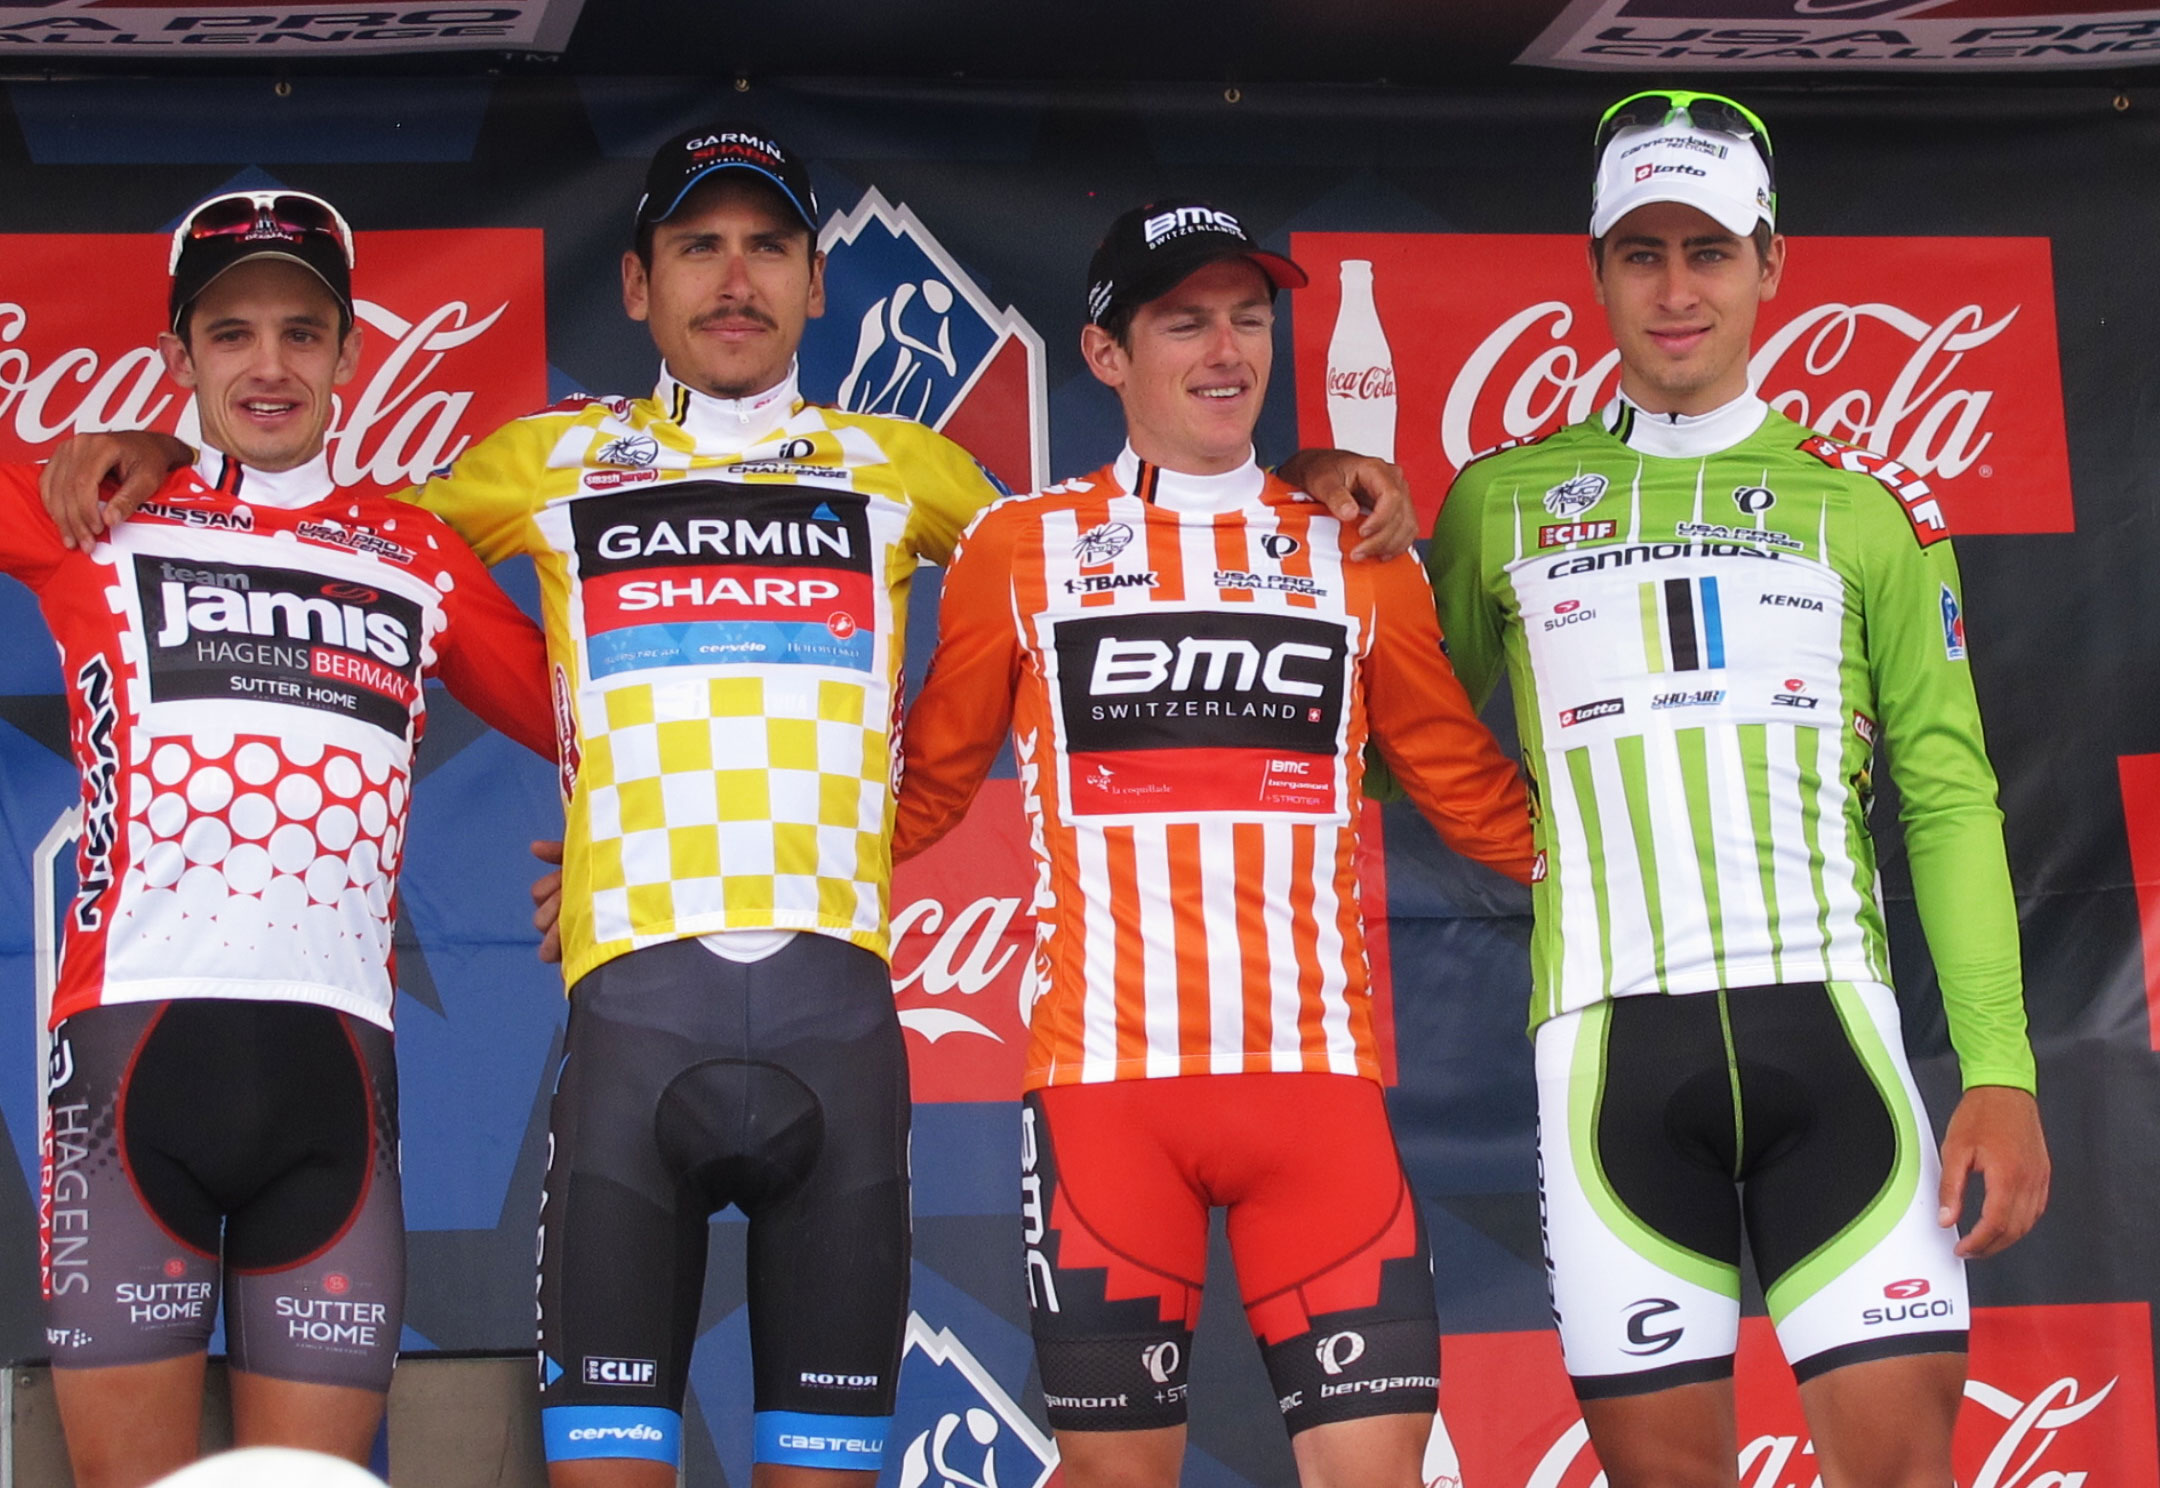 Top four jersey winners as of Stage 2